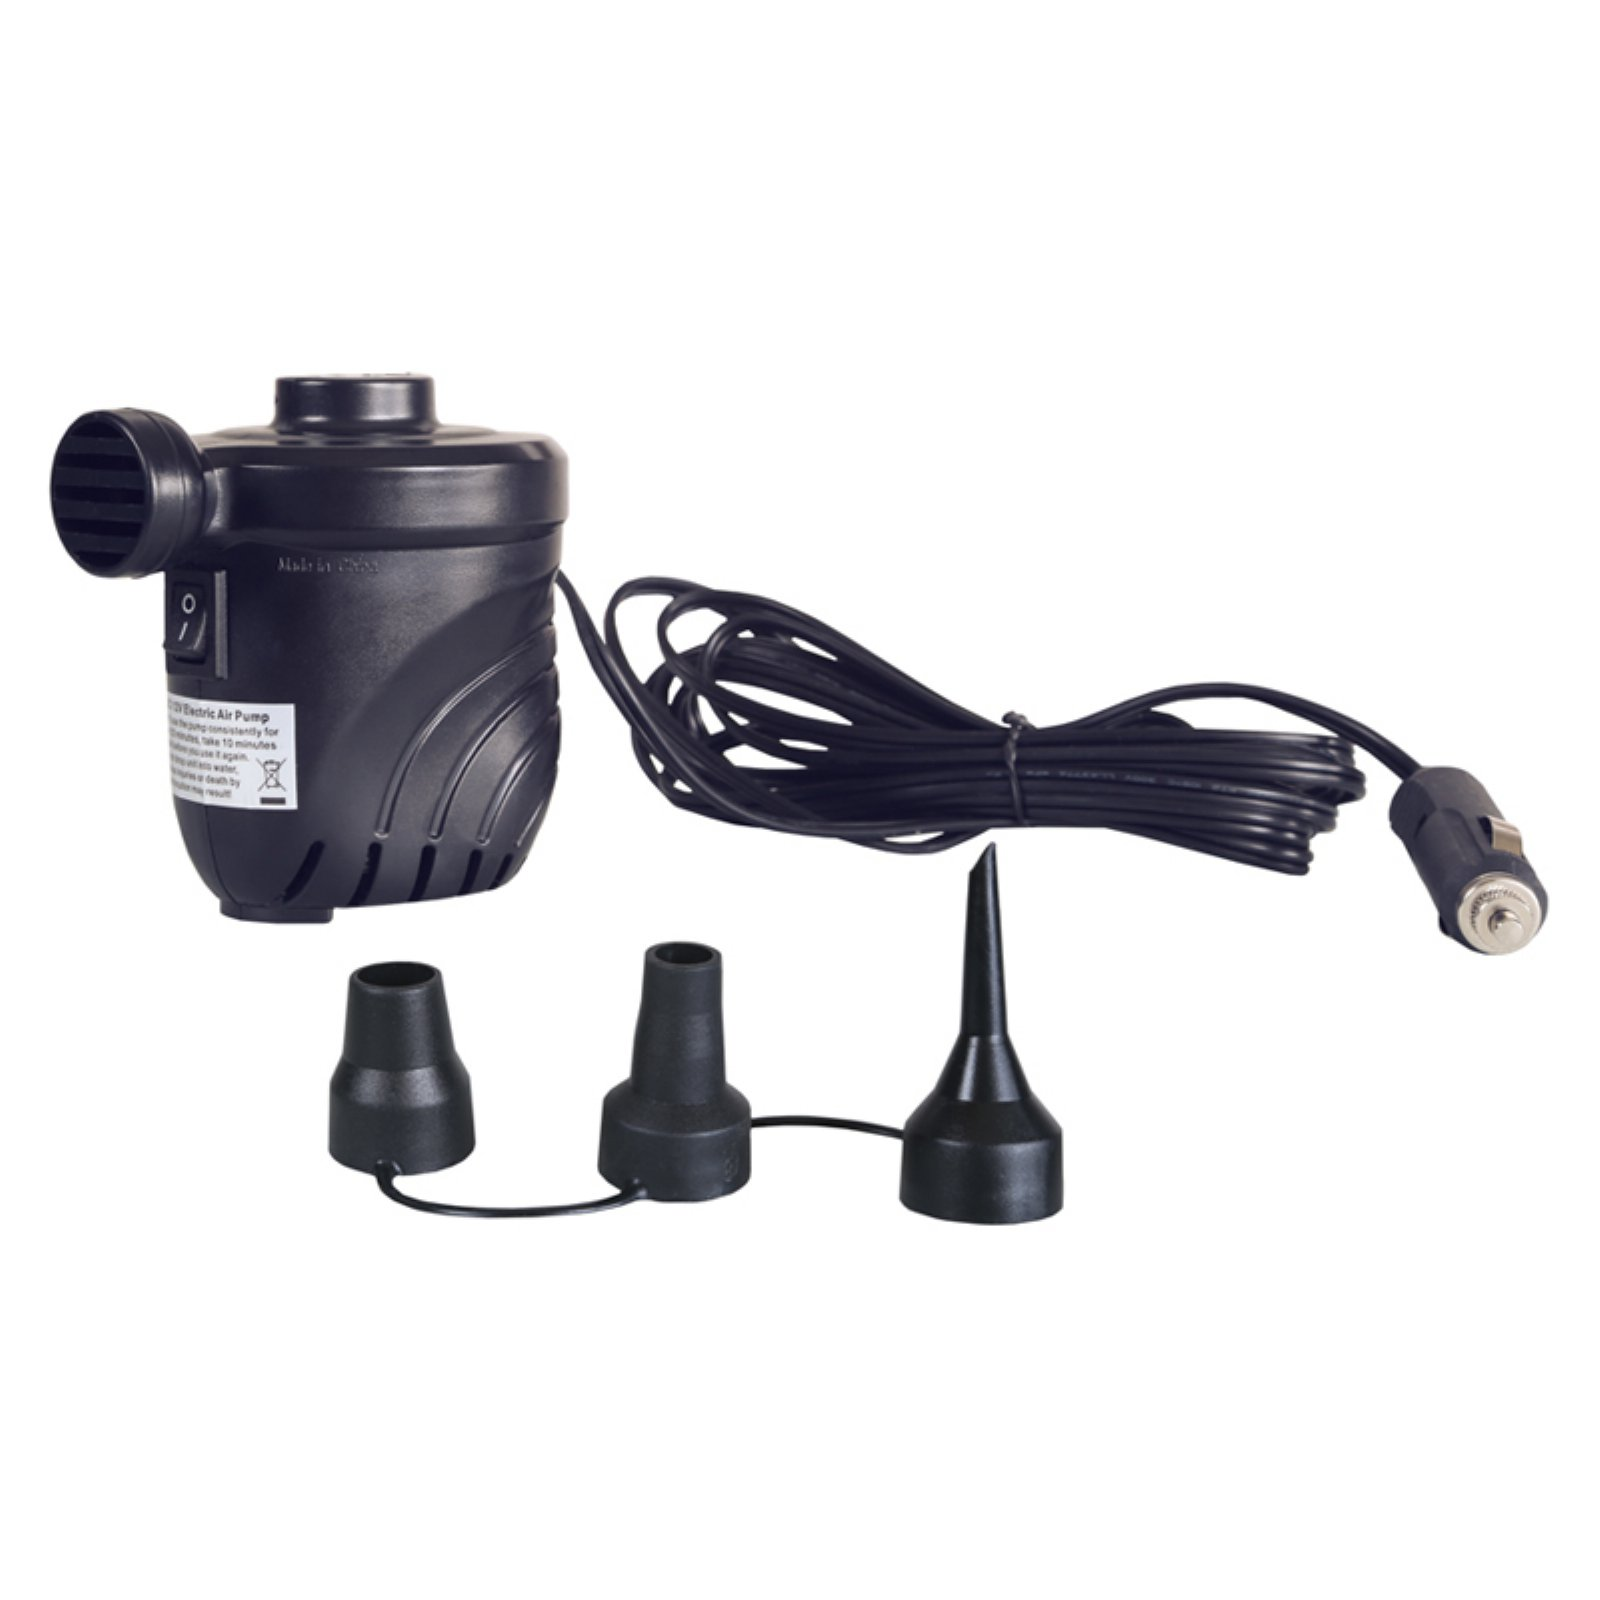 Stansport High Volume Electric Air Pump by Stansport